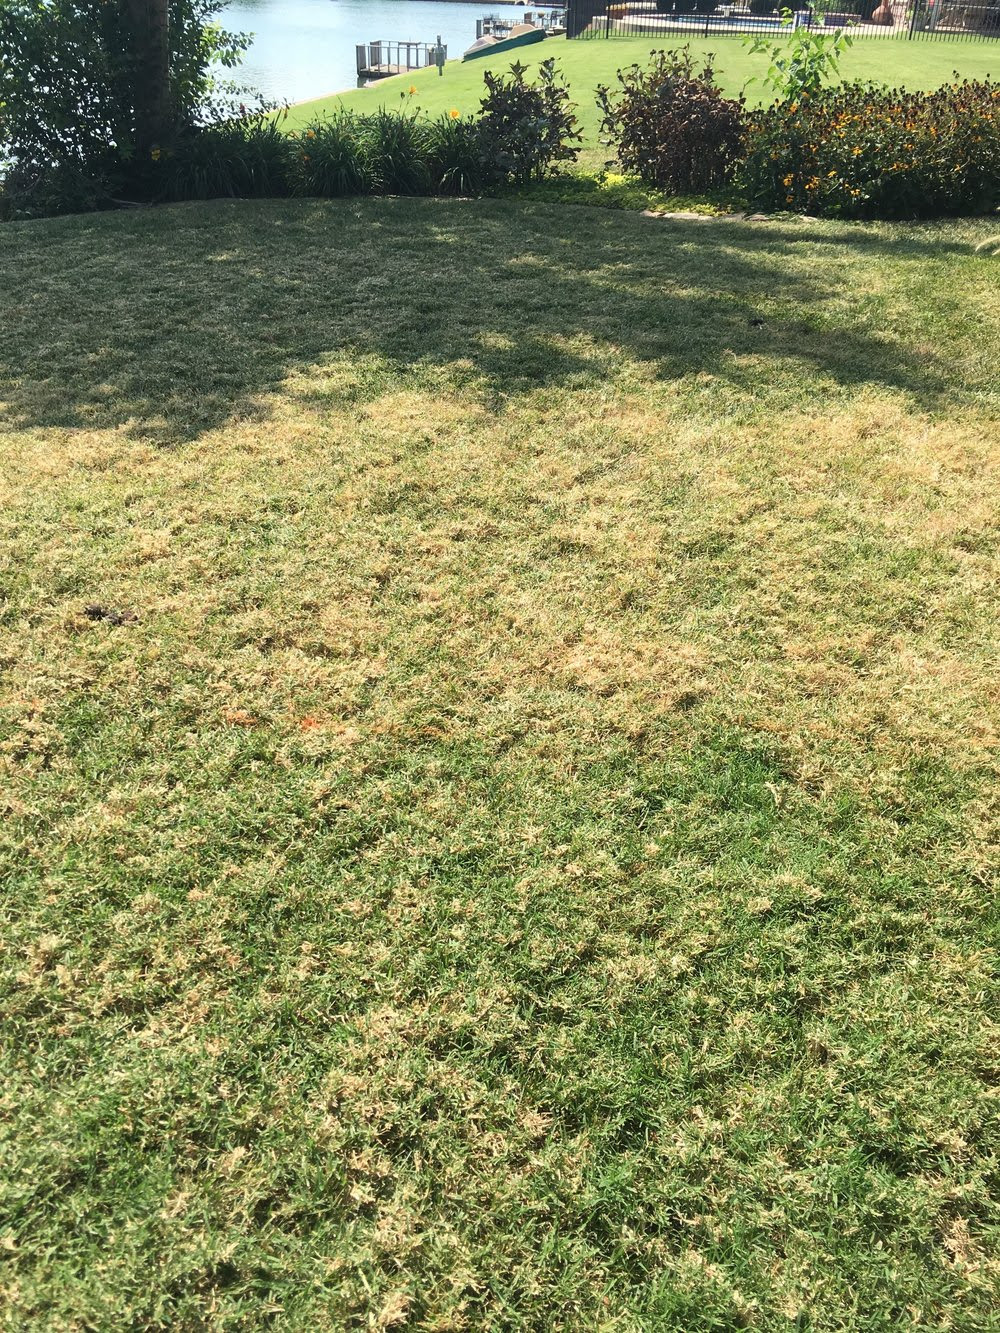 Lawn 2 weeks after treatment to control bermuda.